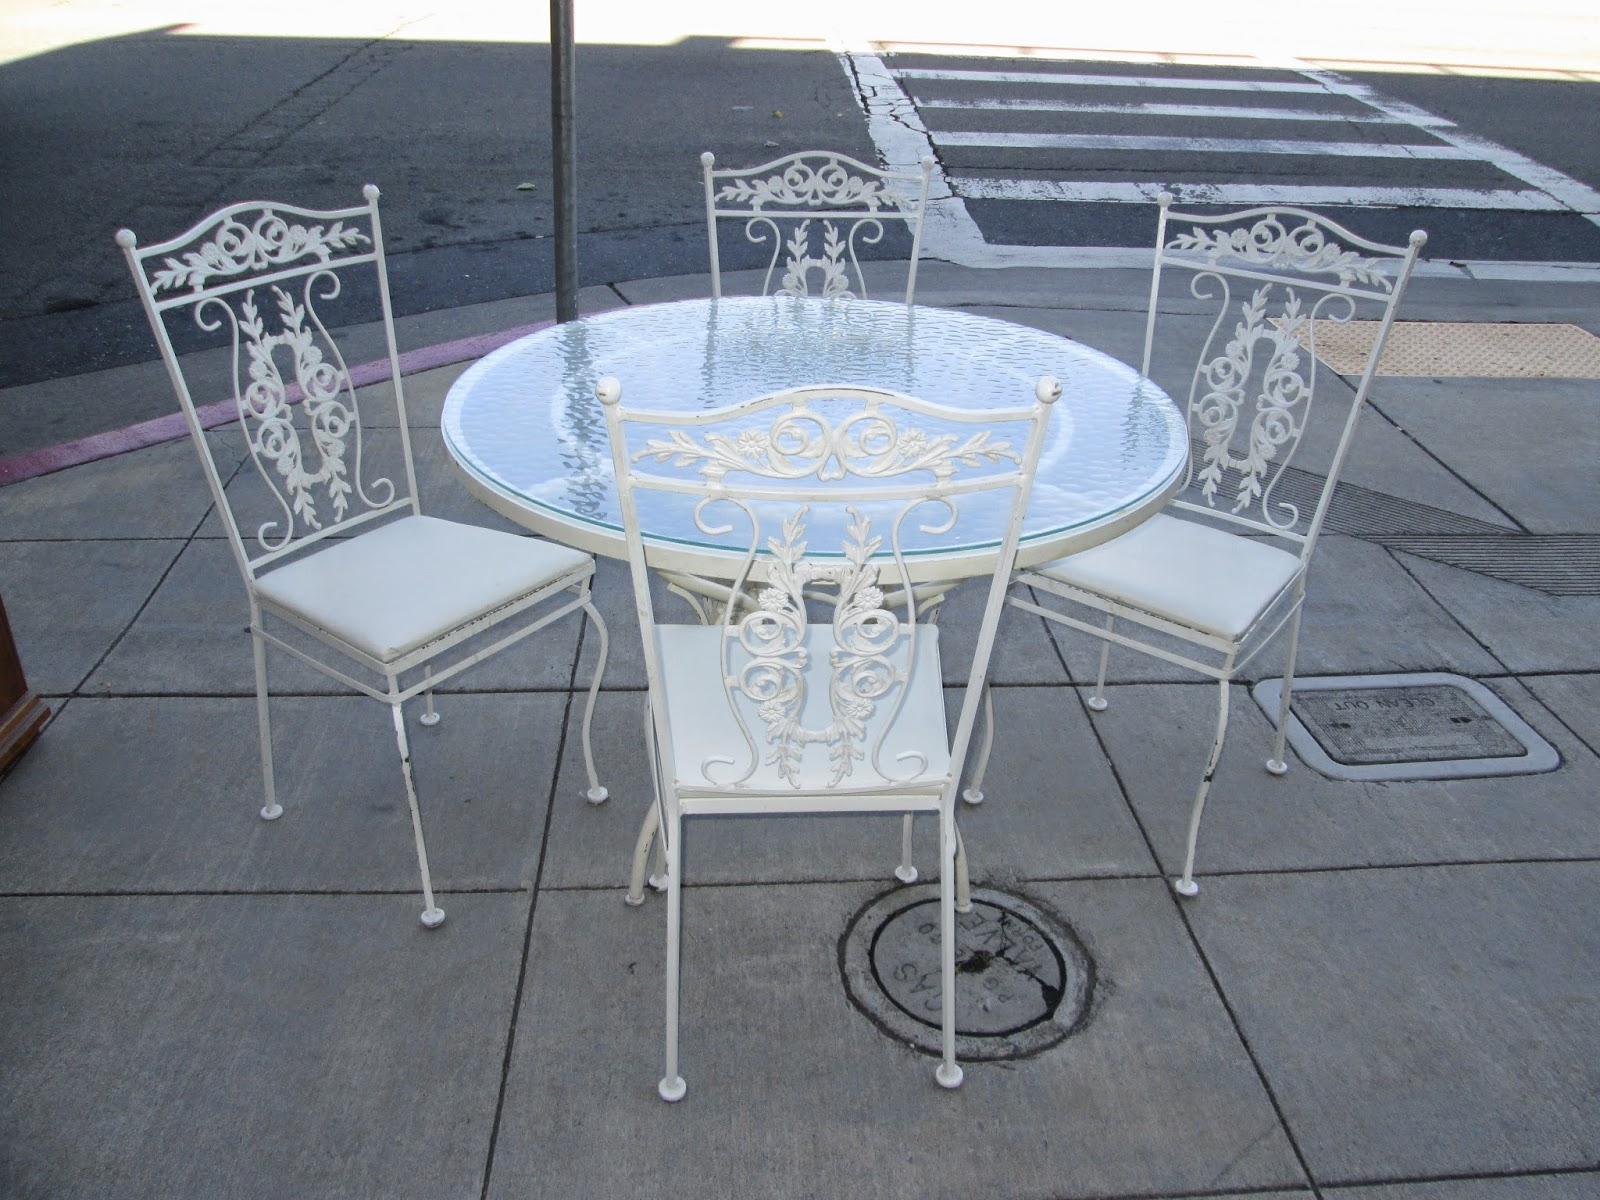 Uhuru Furniture Collectibles Sold Wrought Iron Glass Top Patio Set With 4 Chairs 165